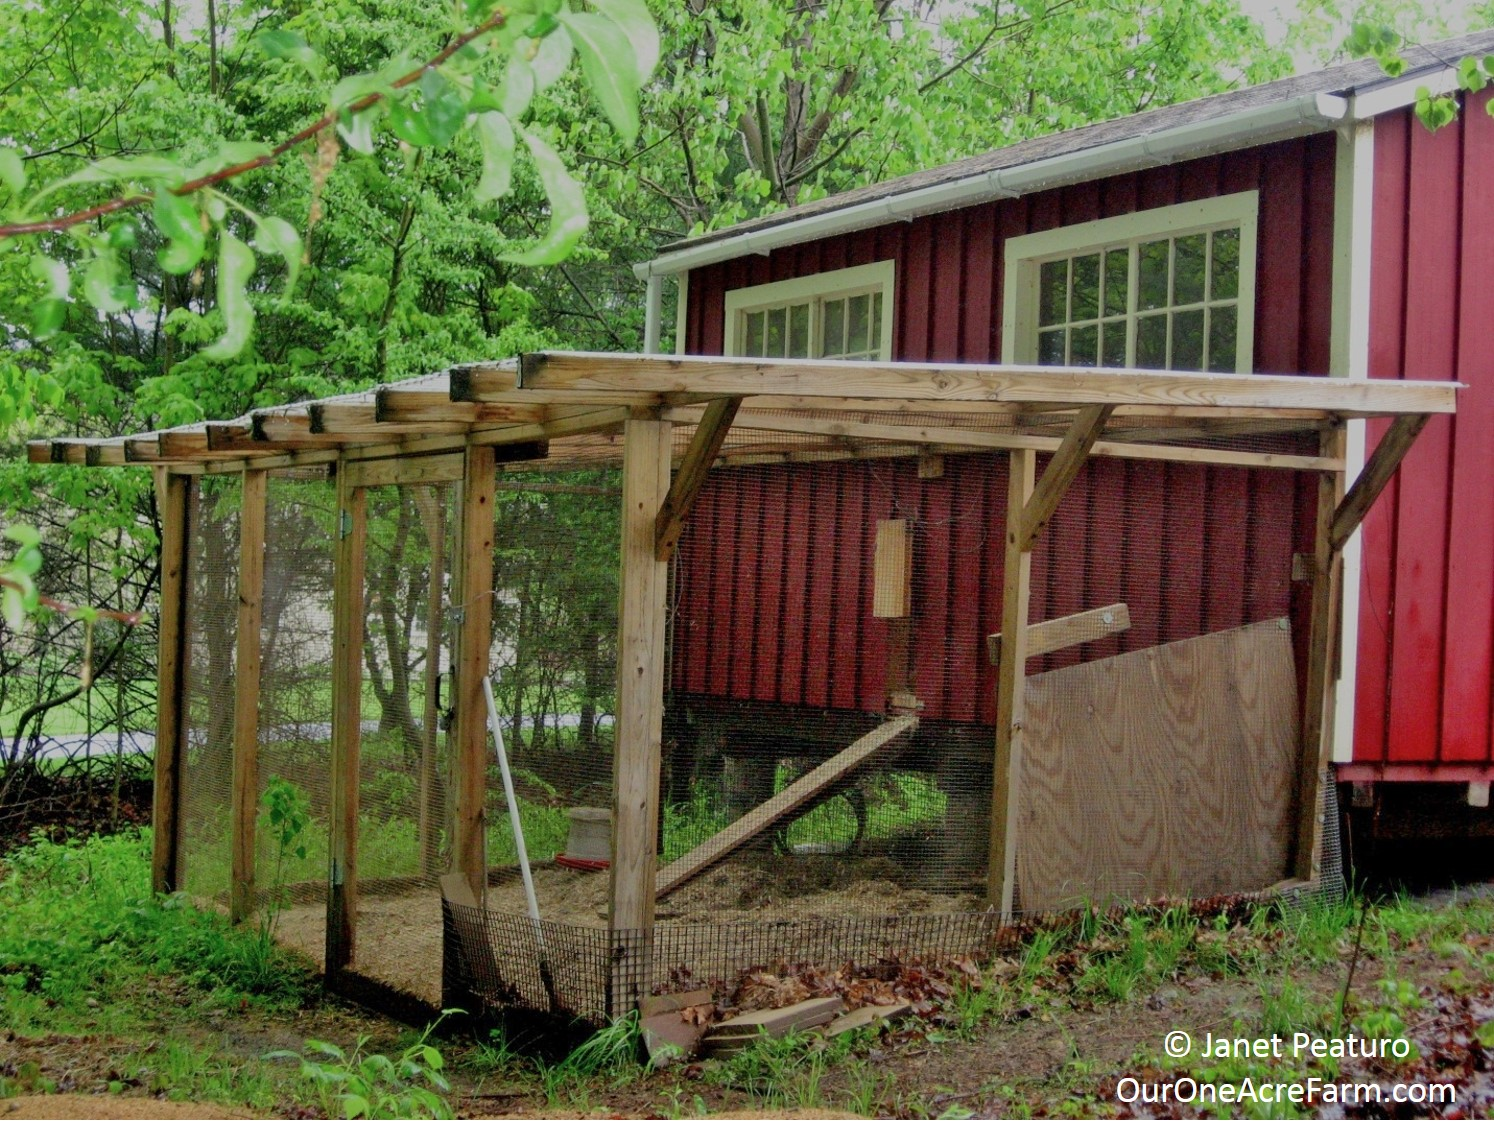 designing the perfect chicken coop - Chicken Coop Design Ideas